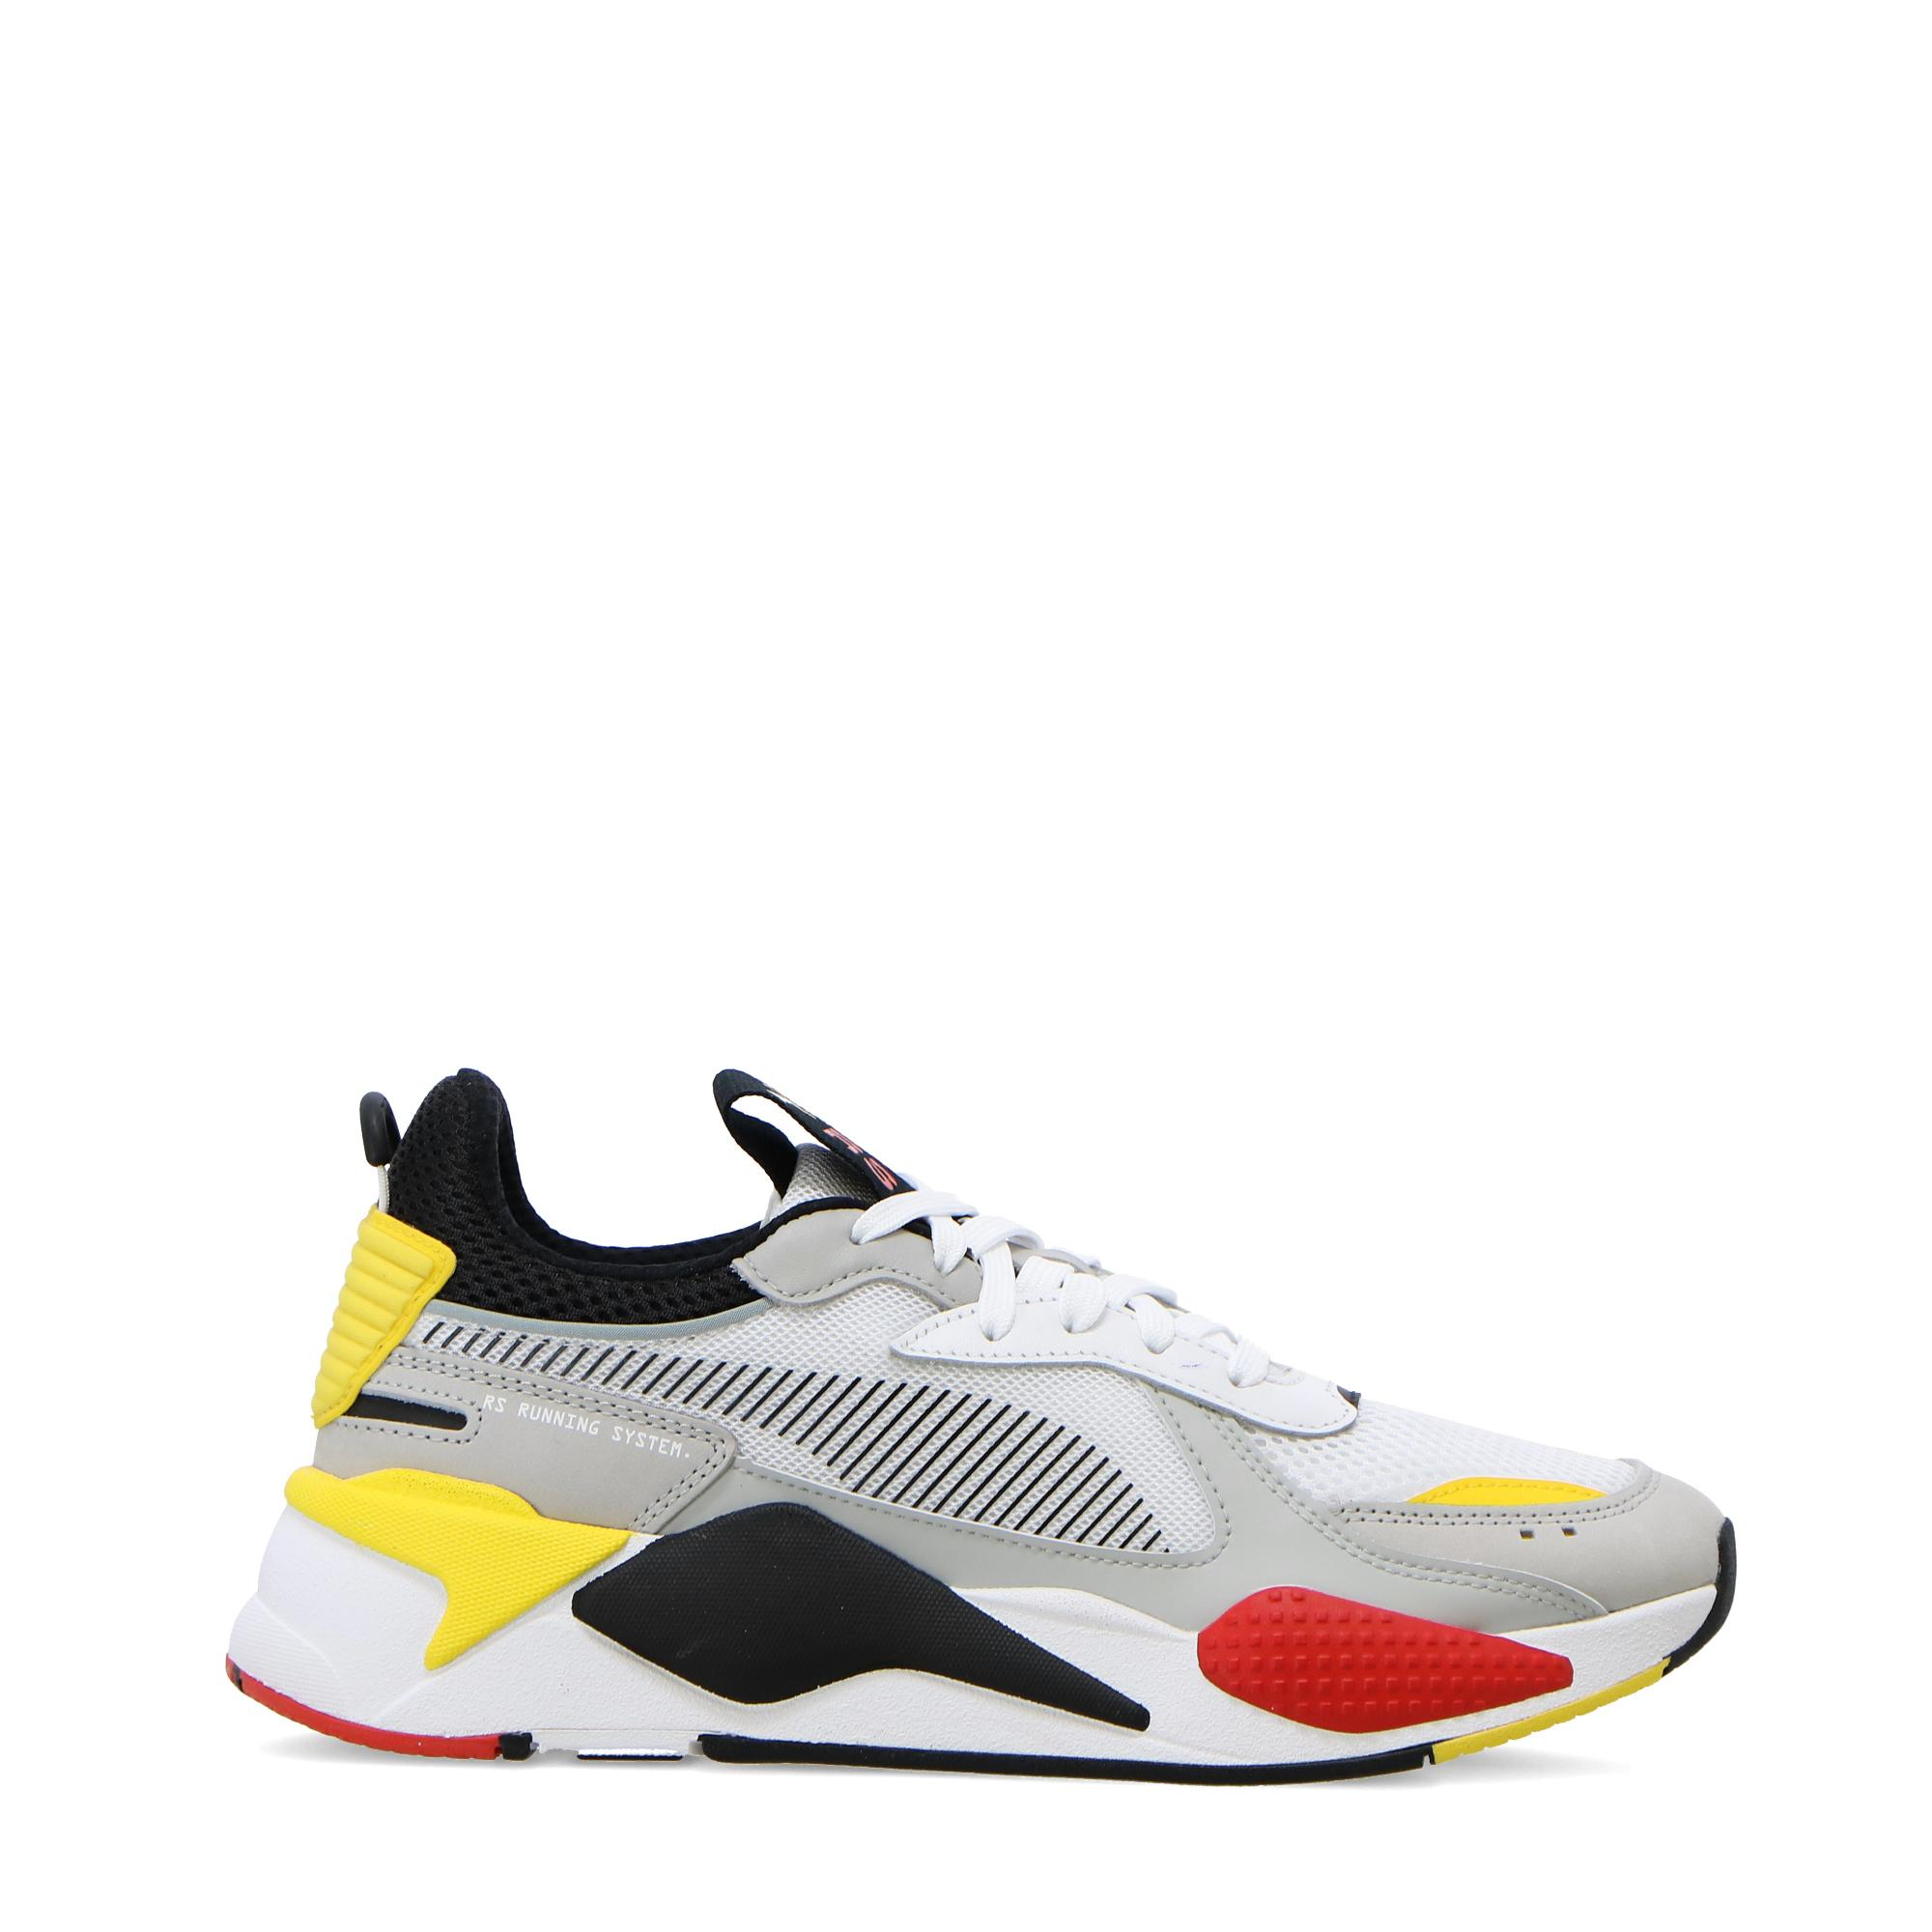 Puma Rs-x Toys<br/> Puma white black cyber yellow